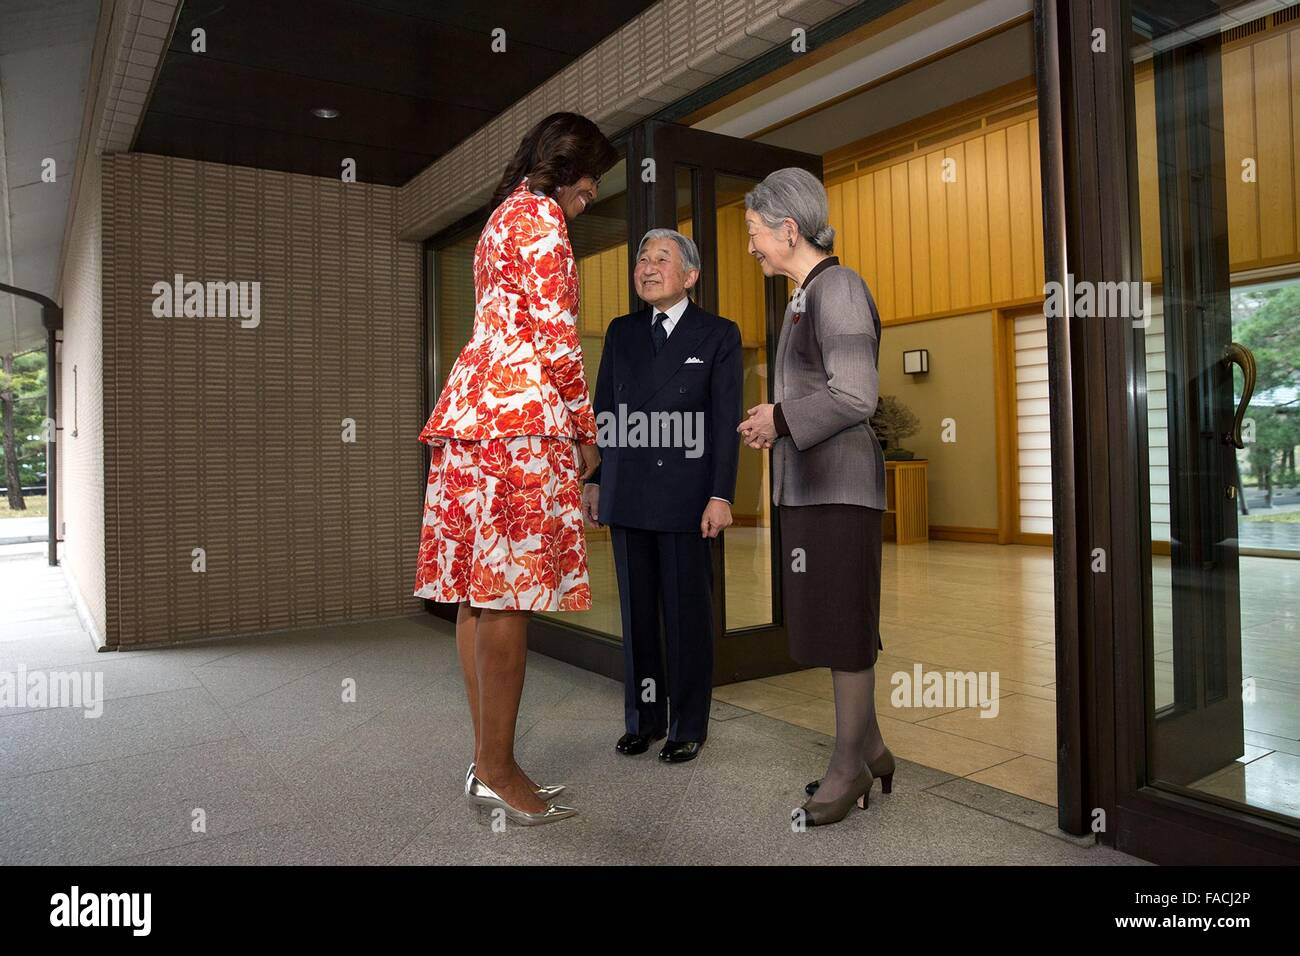 U.S First Lady Michelle Obama greets the Emperor of Japan Akihito and Empress Michiko at the Imperial Palace March - Stock Image